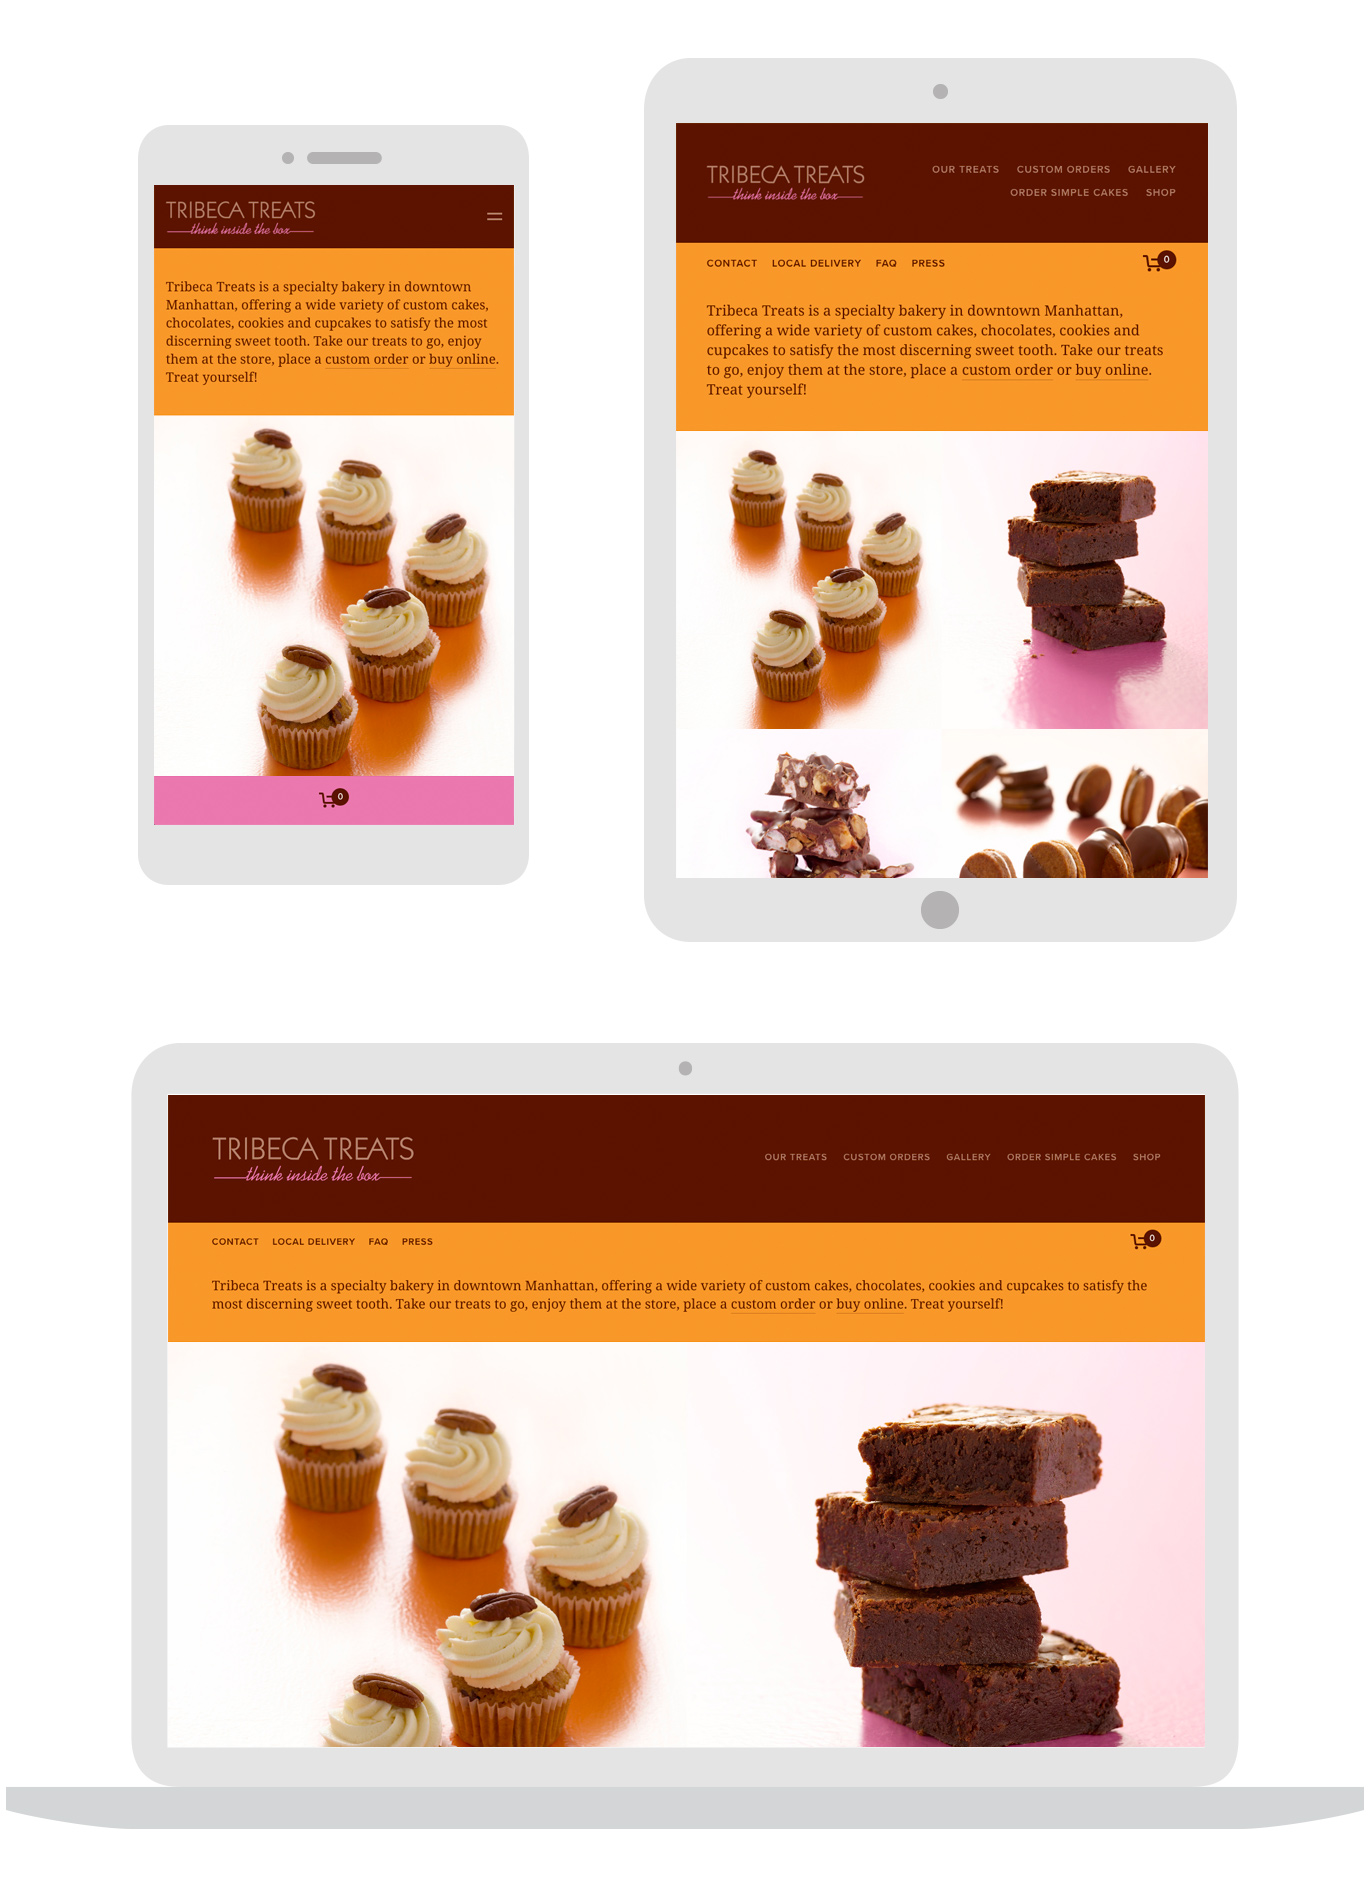 tribeca-treats-responsive-website_01.jpg